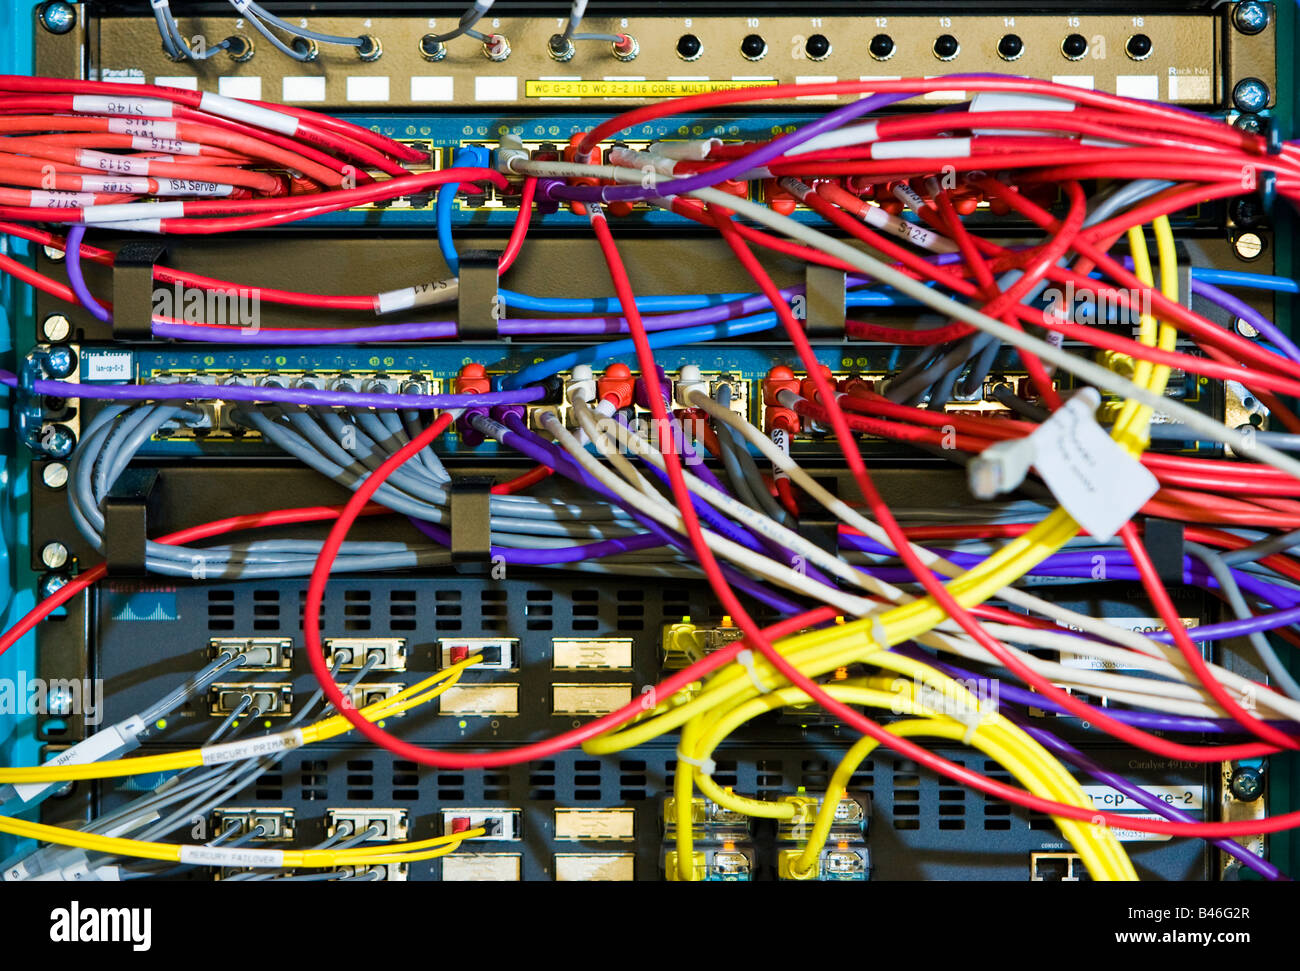 computer cables and wires in a server rack stock photo 19813327 alamy rh alamy com computer wires organizer computer wires and connectors in new jersey